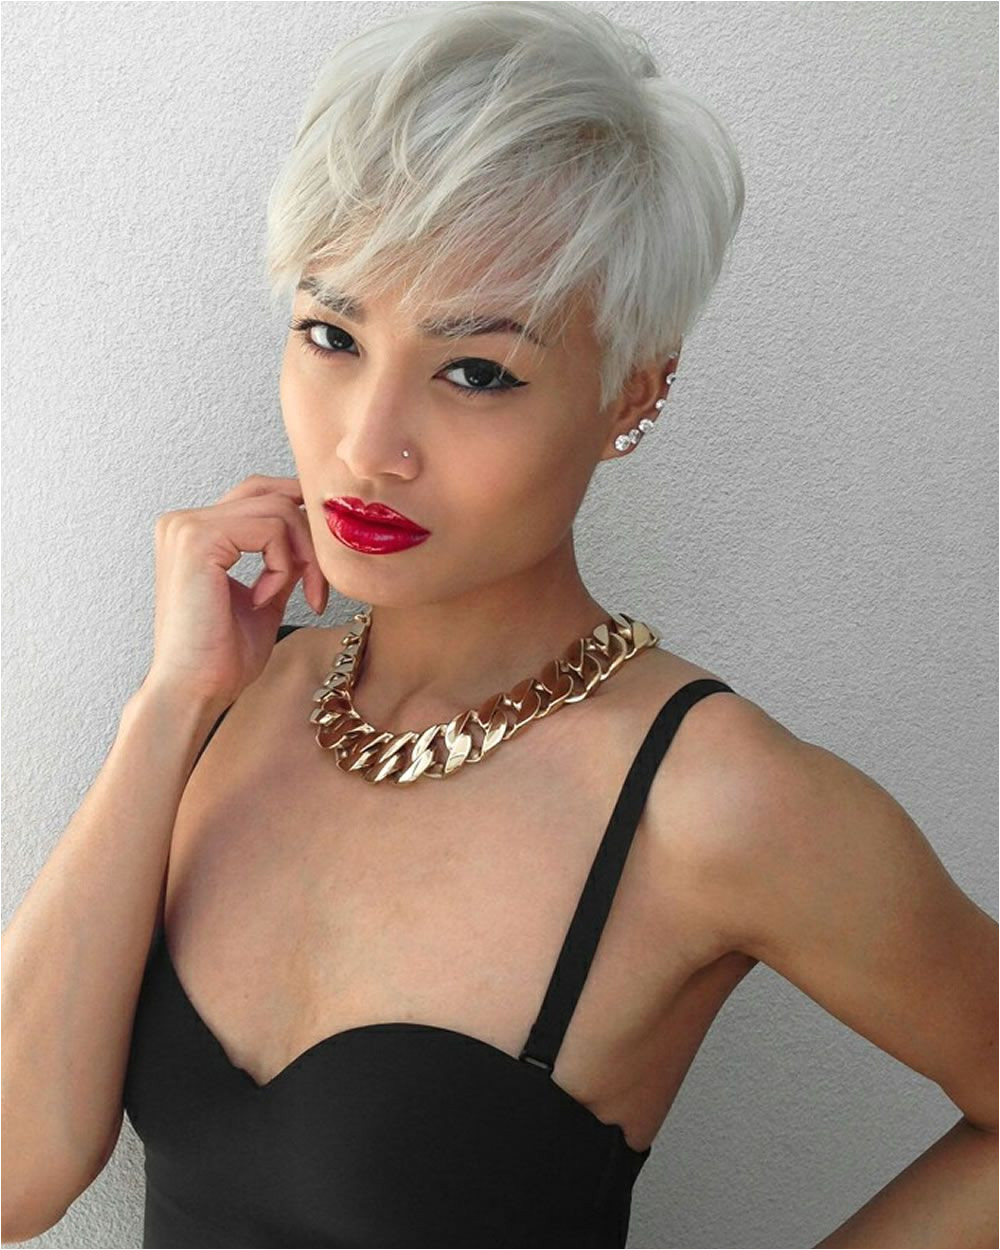 Pixie haircuts for Asian women